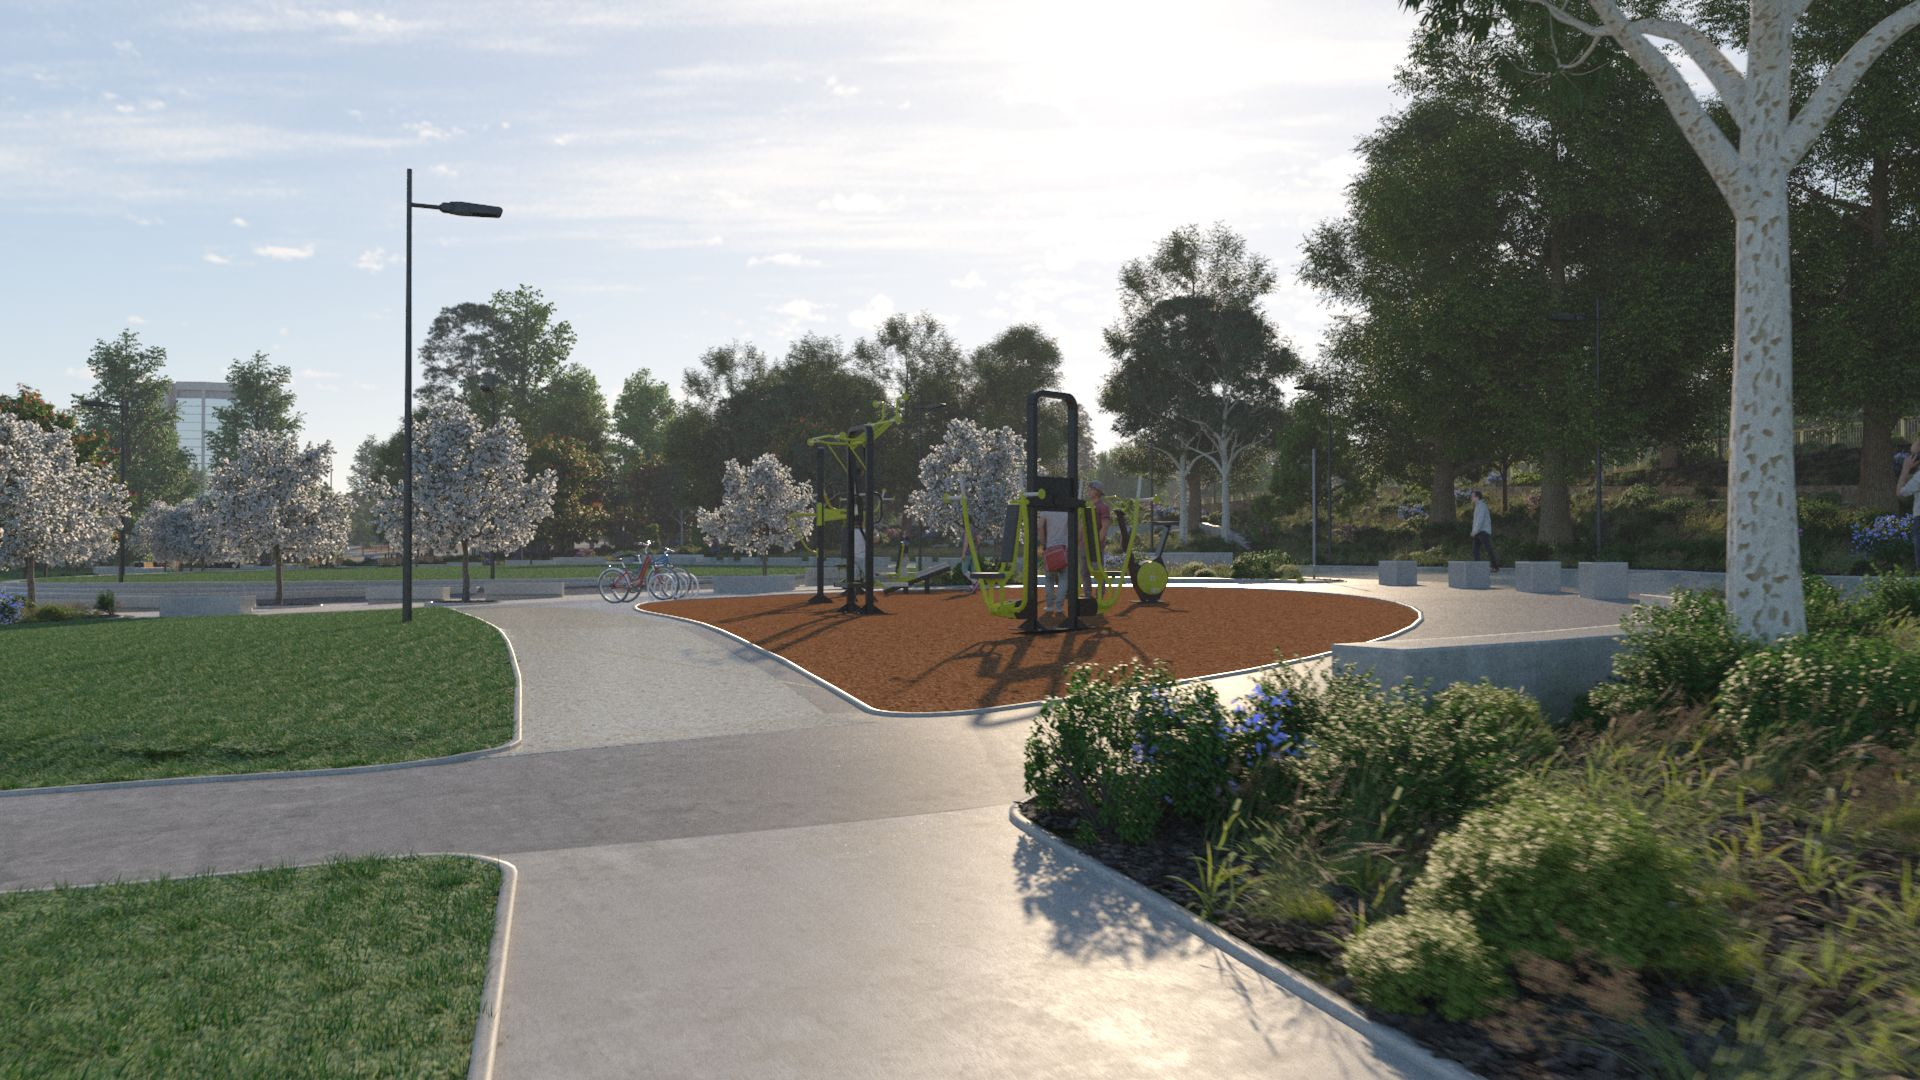 3D image of exercise facilities in the park